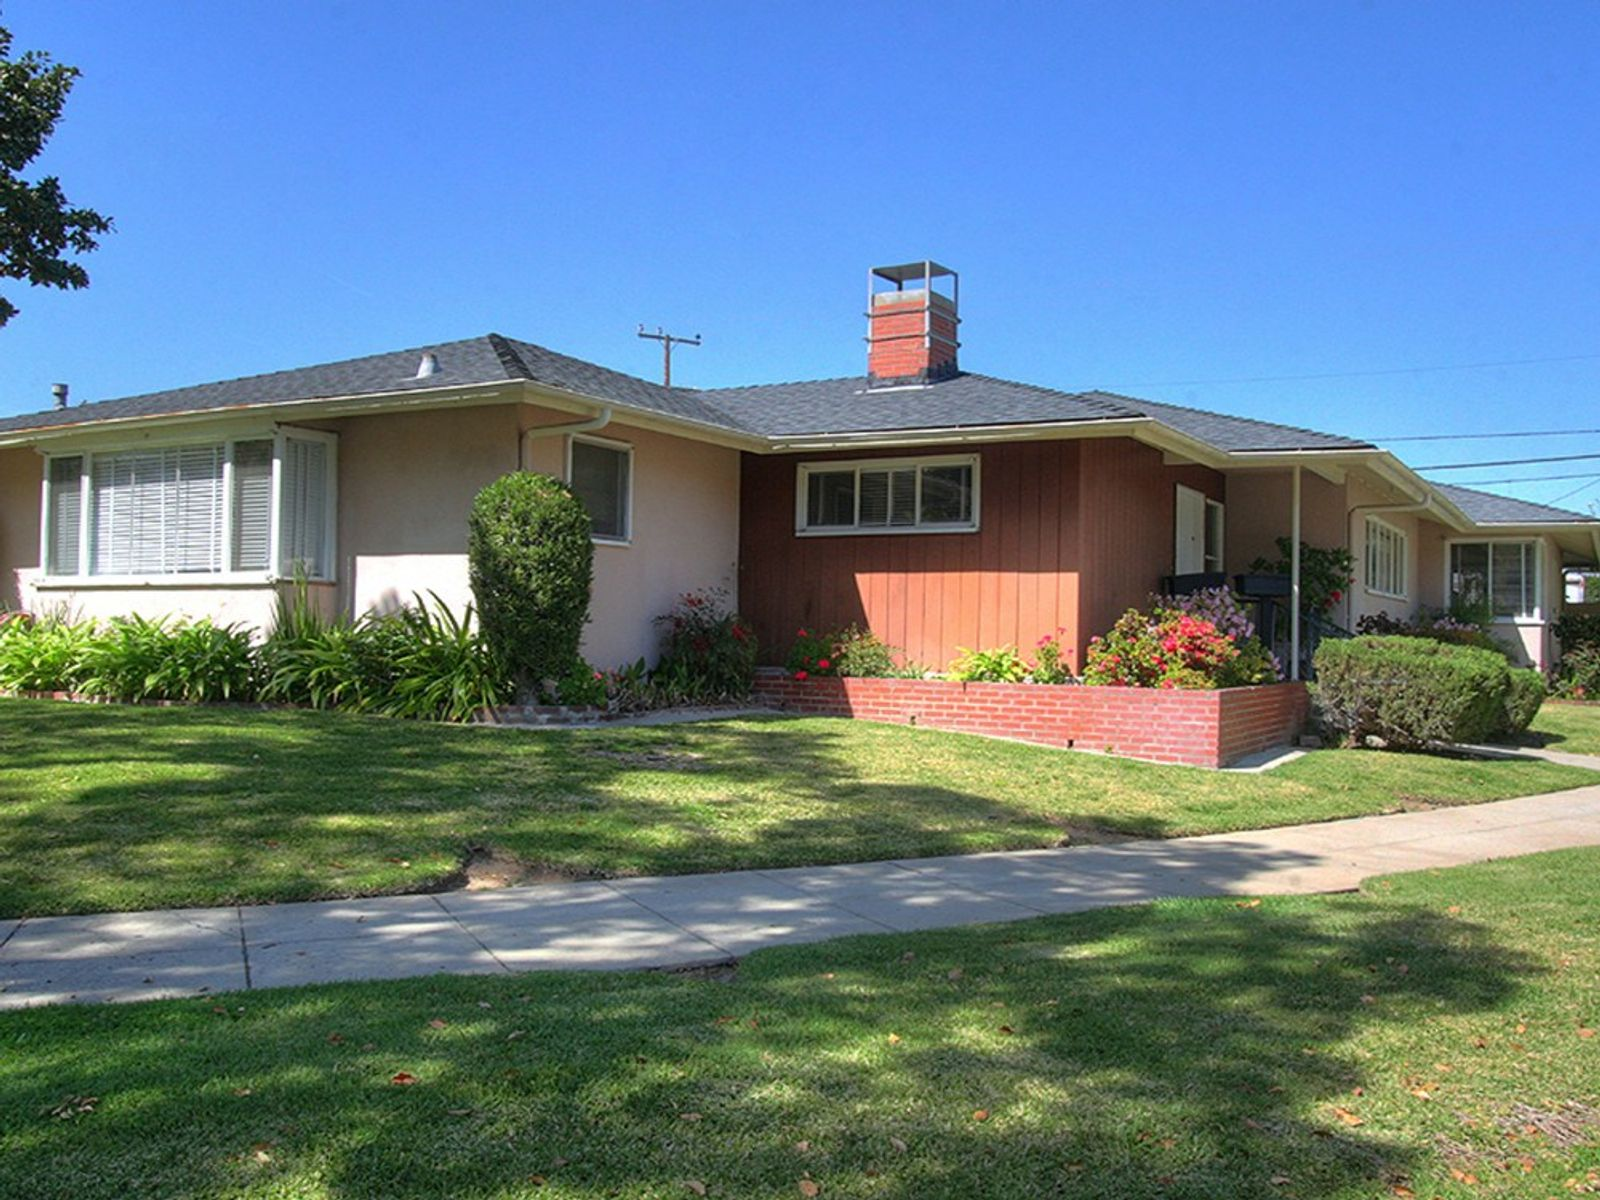 Fabulous Ranch Home, Alhambra CA Single Family Home - Pasadena Real Estate